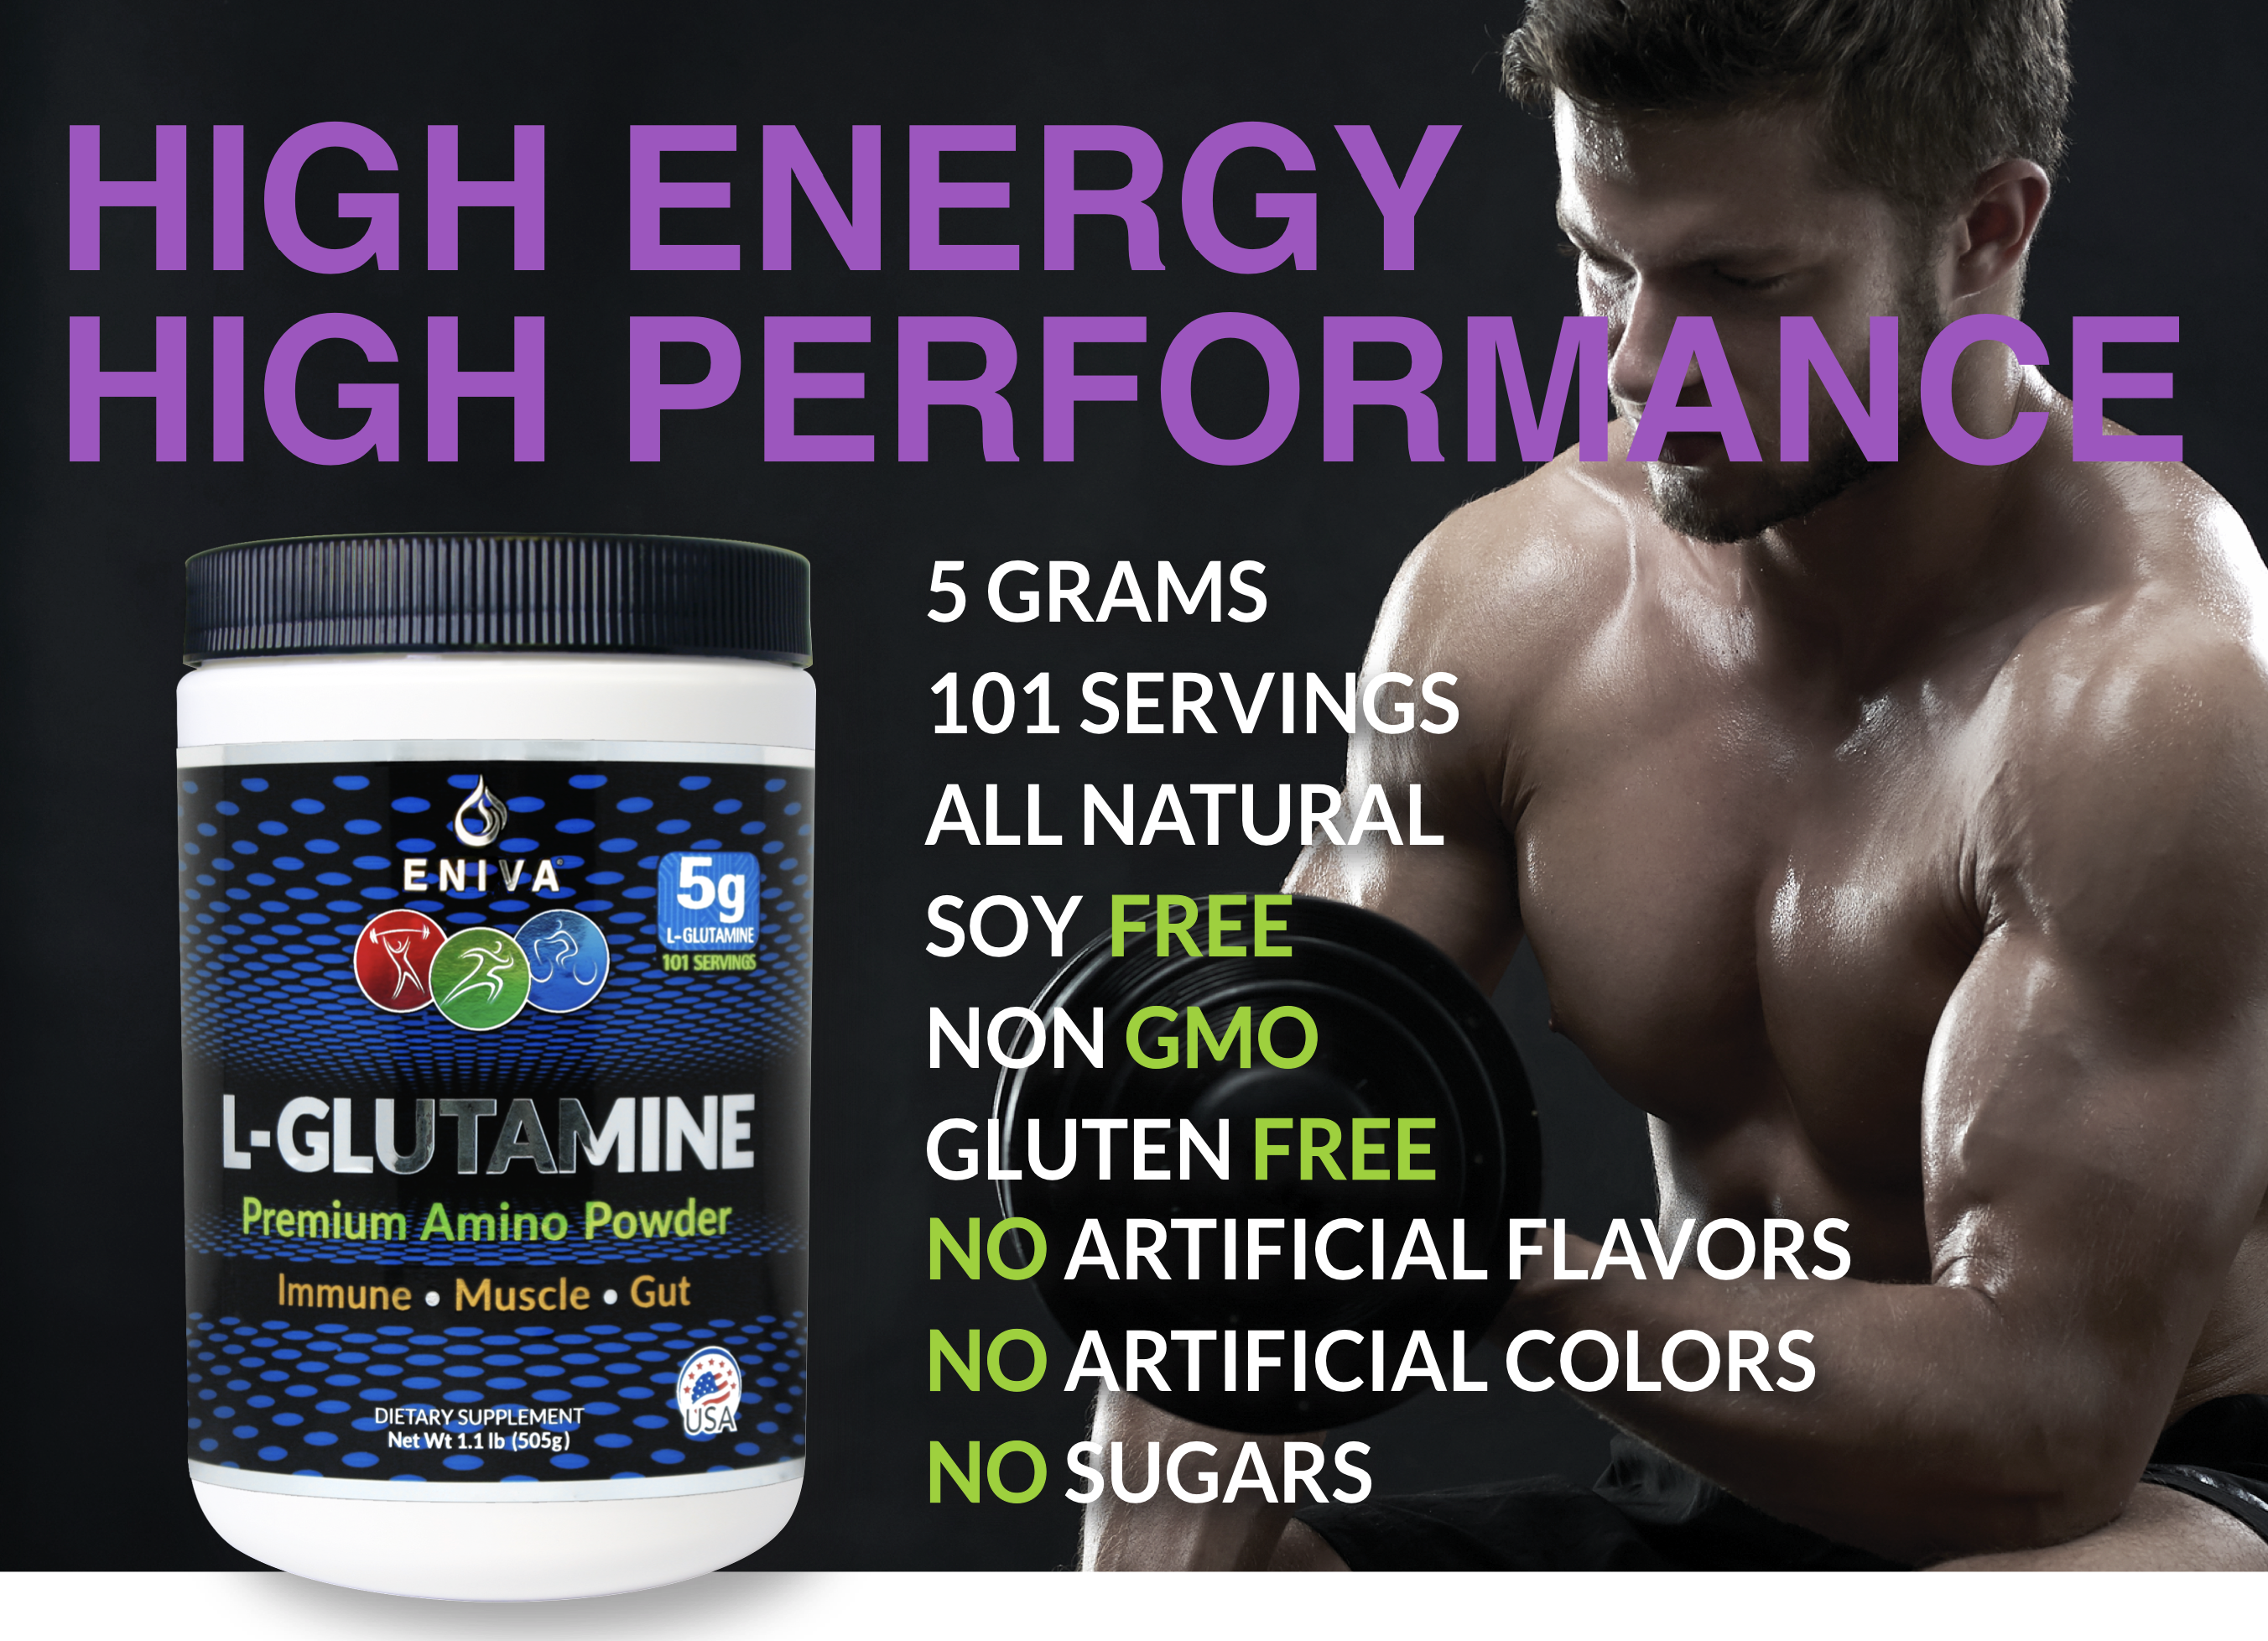 L-Glutamine 5 Grams High Energy High Performance Eniva